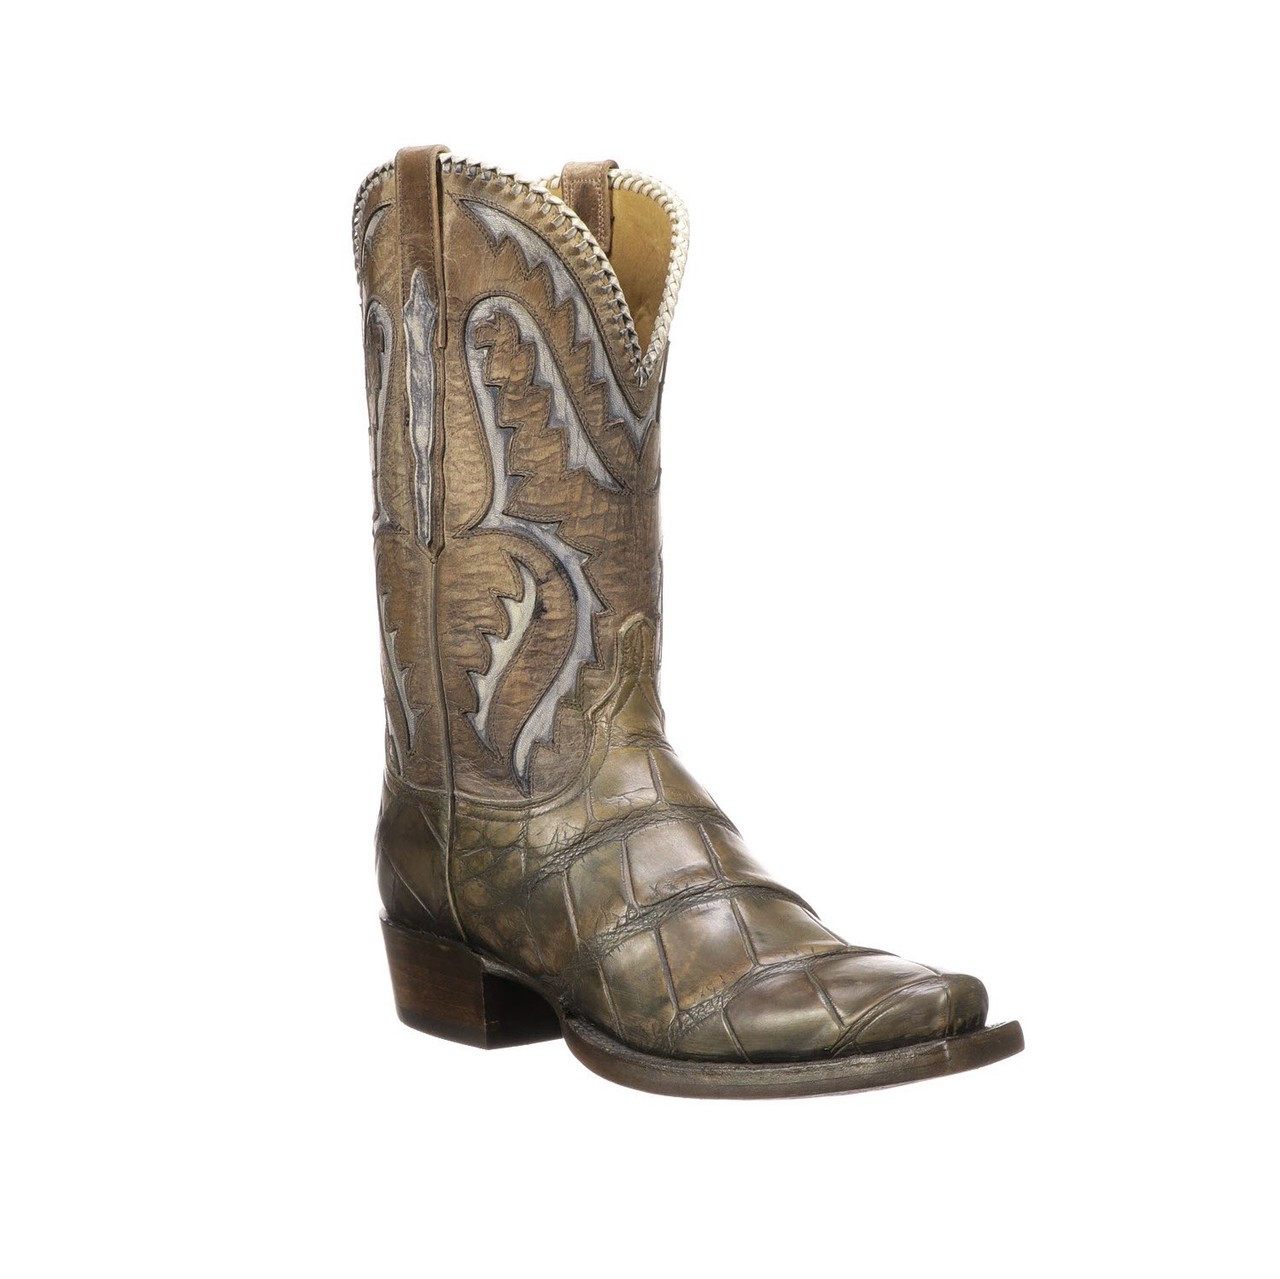 a2814403bd0 Lucchese Men's Boots - Classics Hand Made - Derek - Stone Wash Tan - Giant  Alligator / Mad Dog Goat